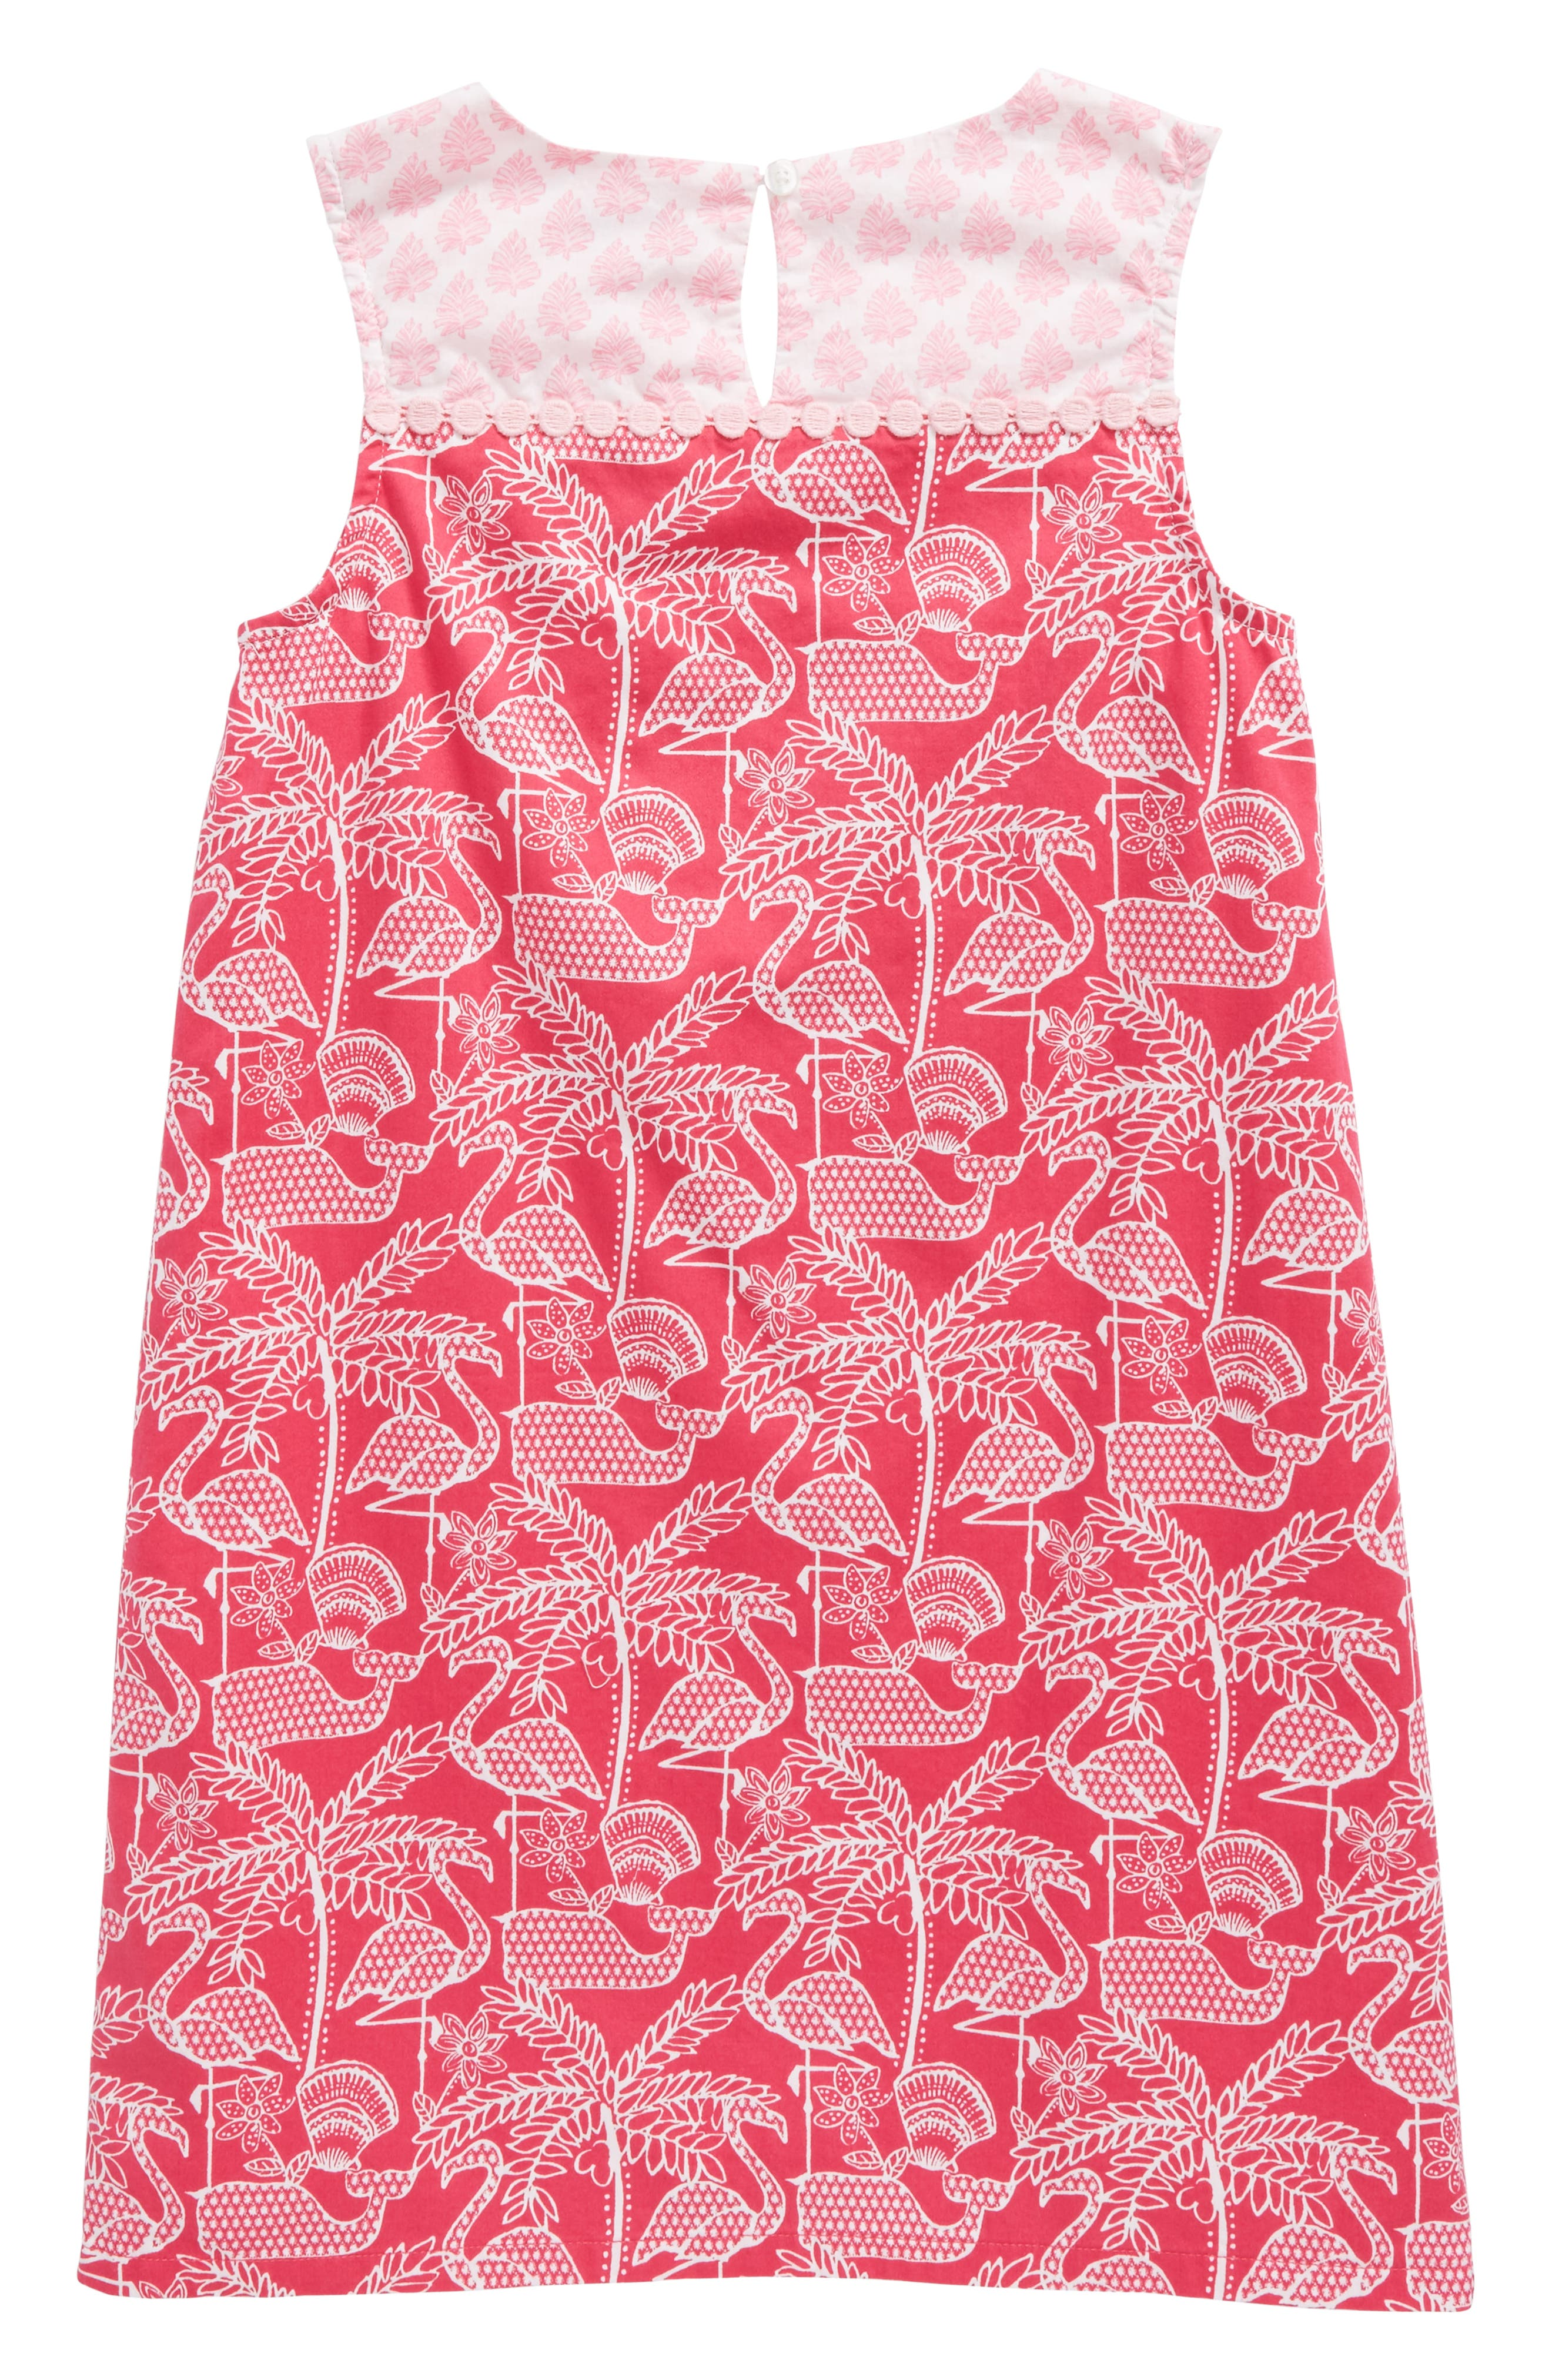 Flamingo Print Shift Dress,                             Alternate thumbnail 2, color,                             Rhododendron